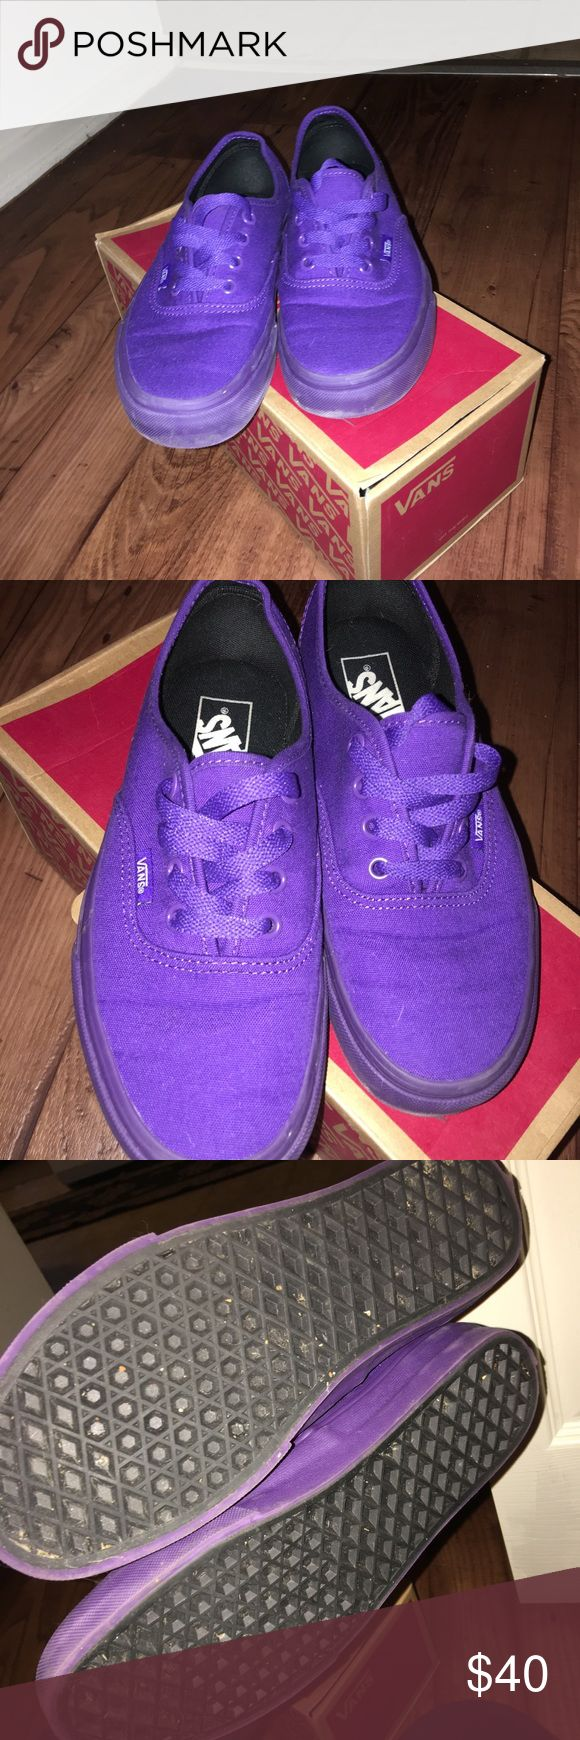 Purple Vans Only worn about 3x. I don't use so I want gone Vans Shoes